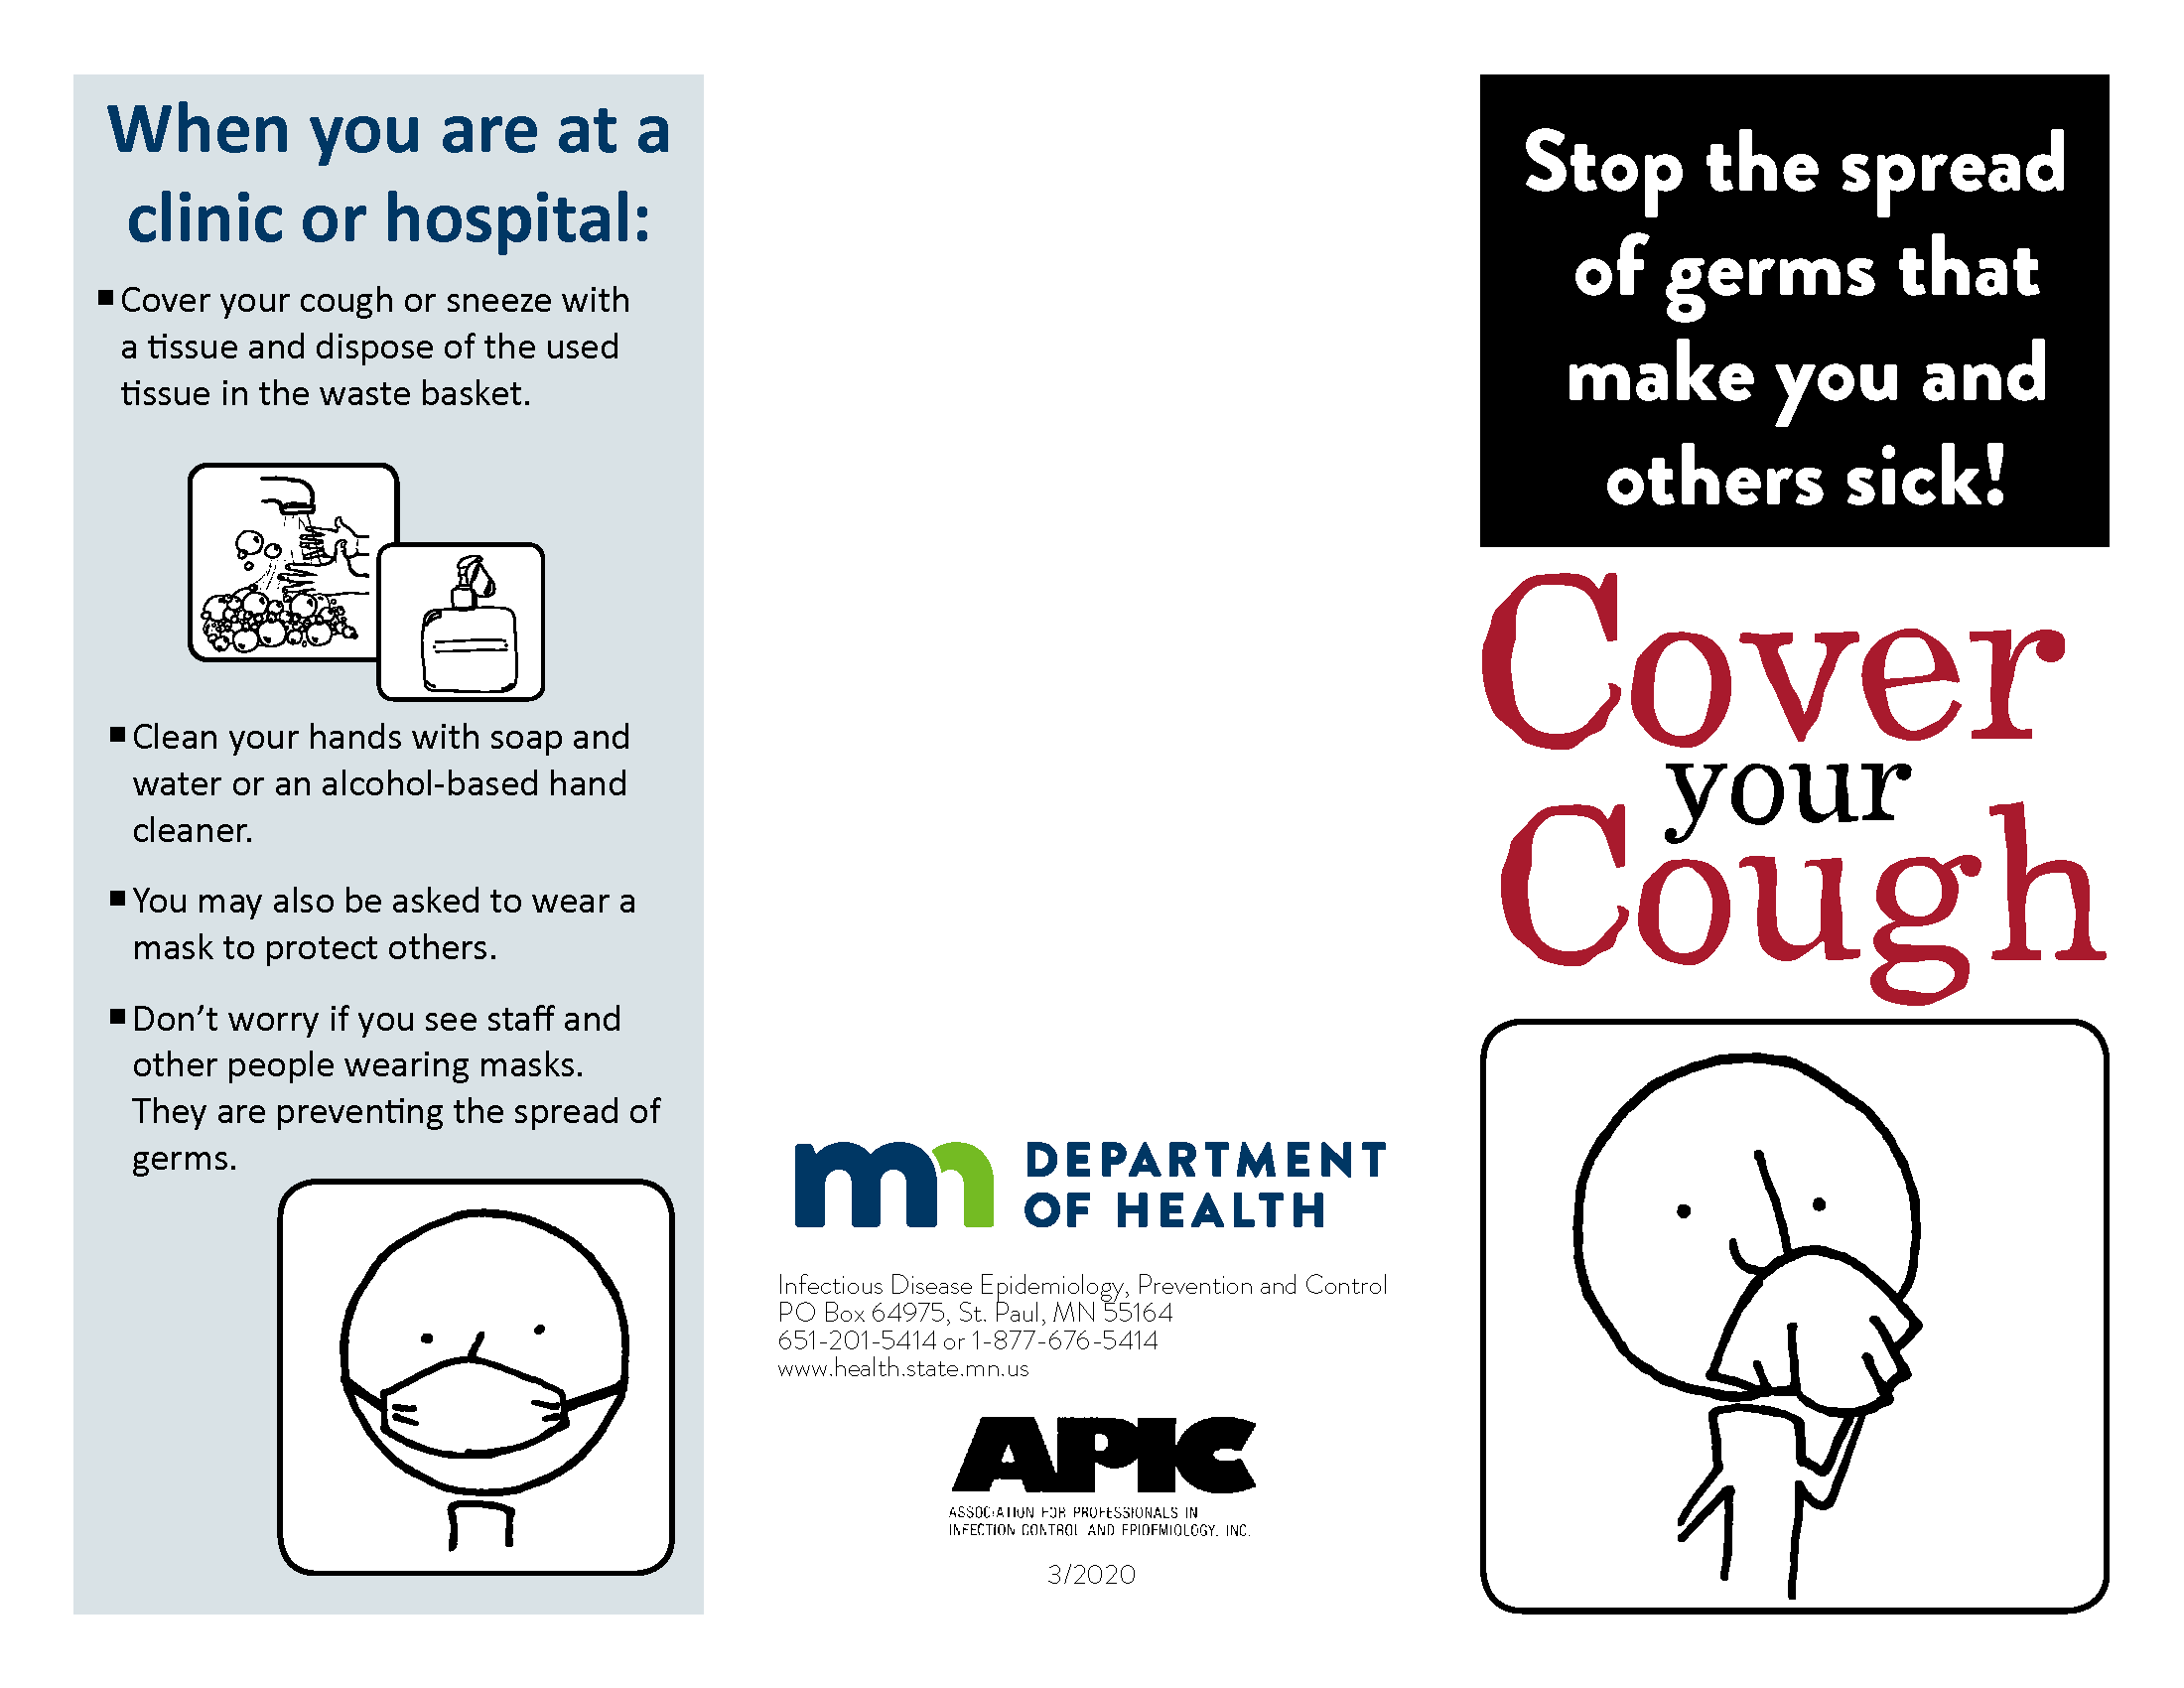 image of green cover your cough poster